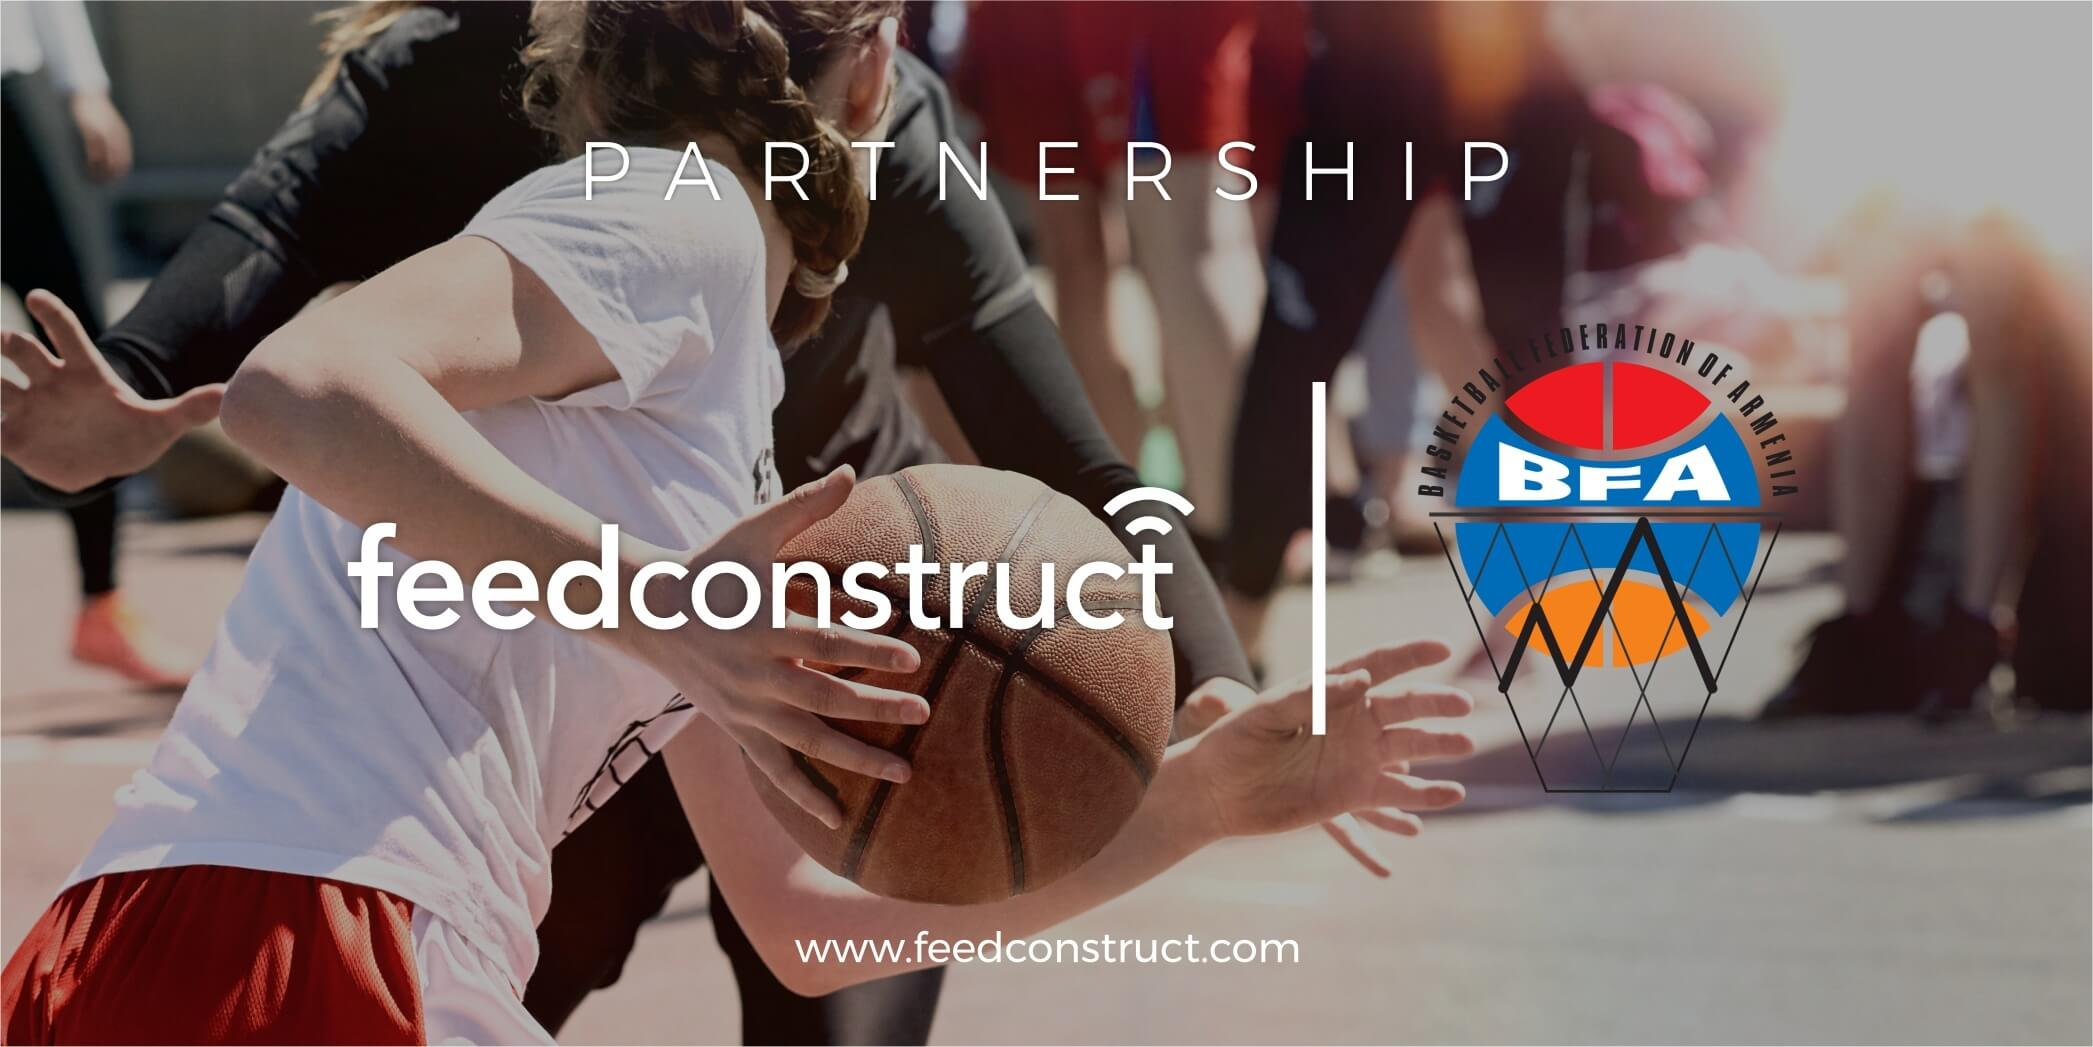 FeedConstruct signs an exclusive deal with Basketball Federation of Armenia